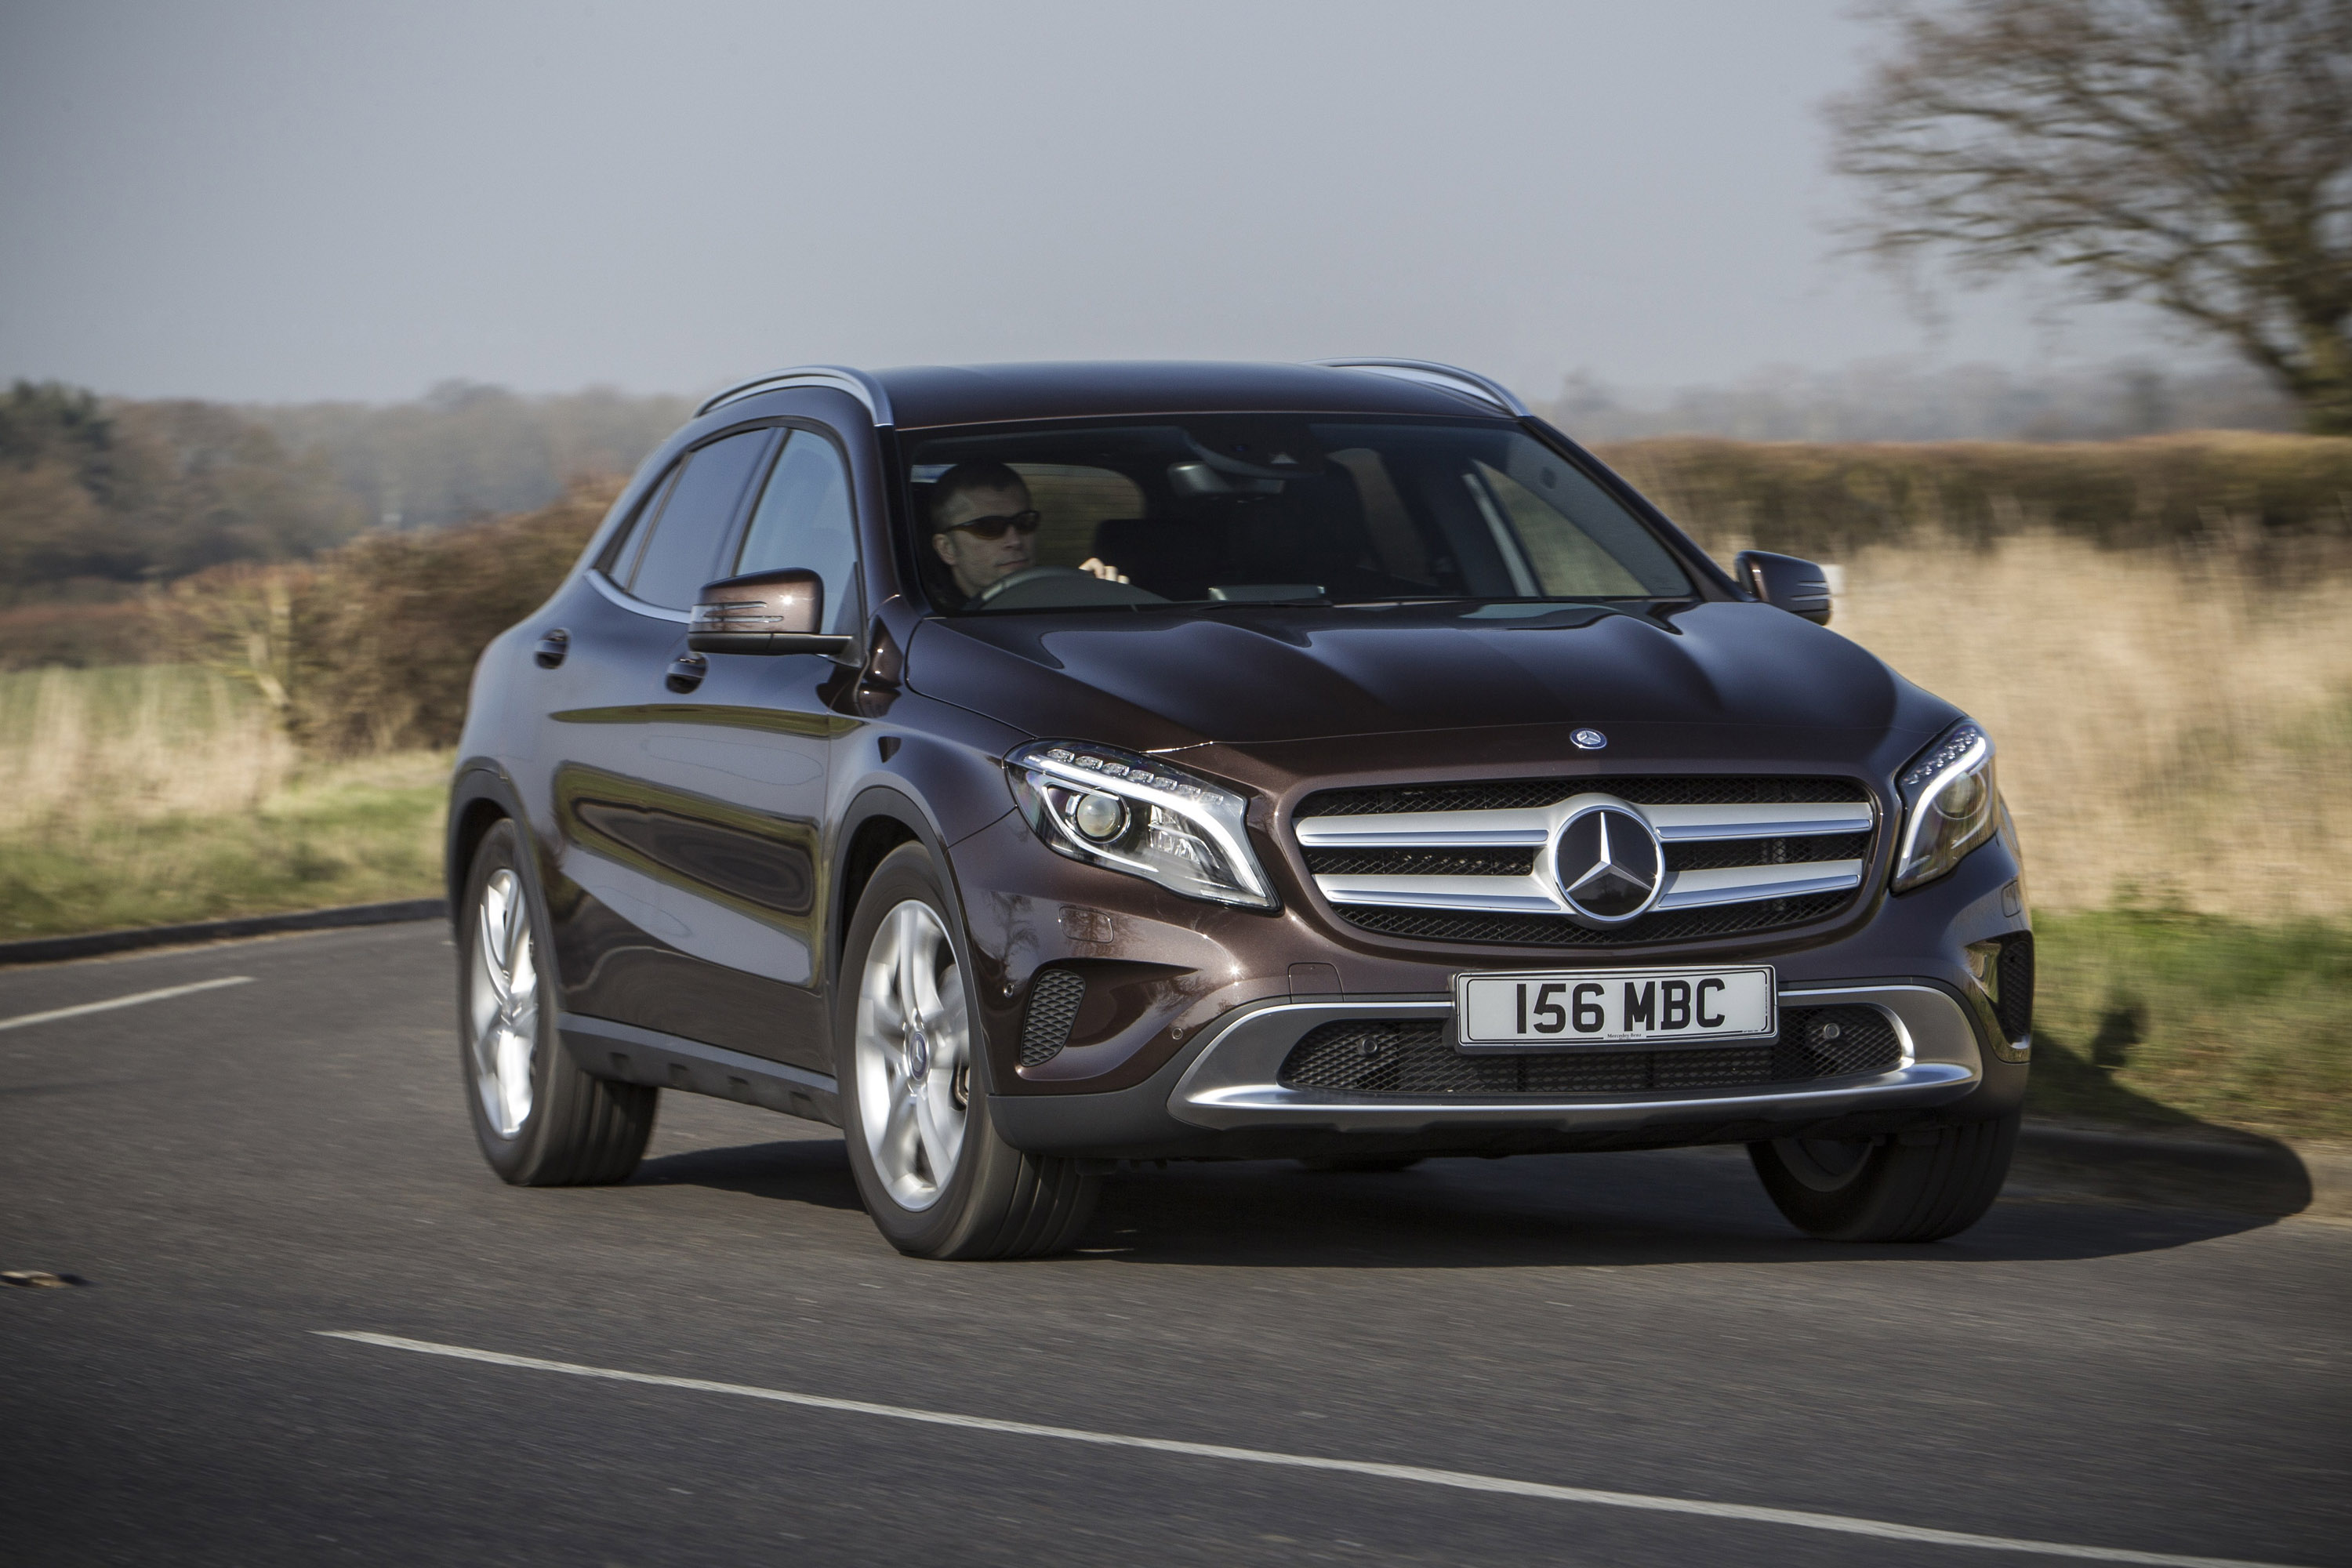 2015 mercedes benz gla uk version hd pictures for Mercedes benz 2015 gla